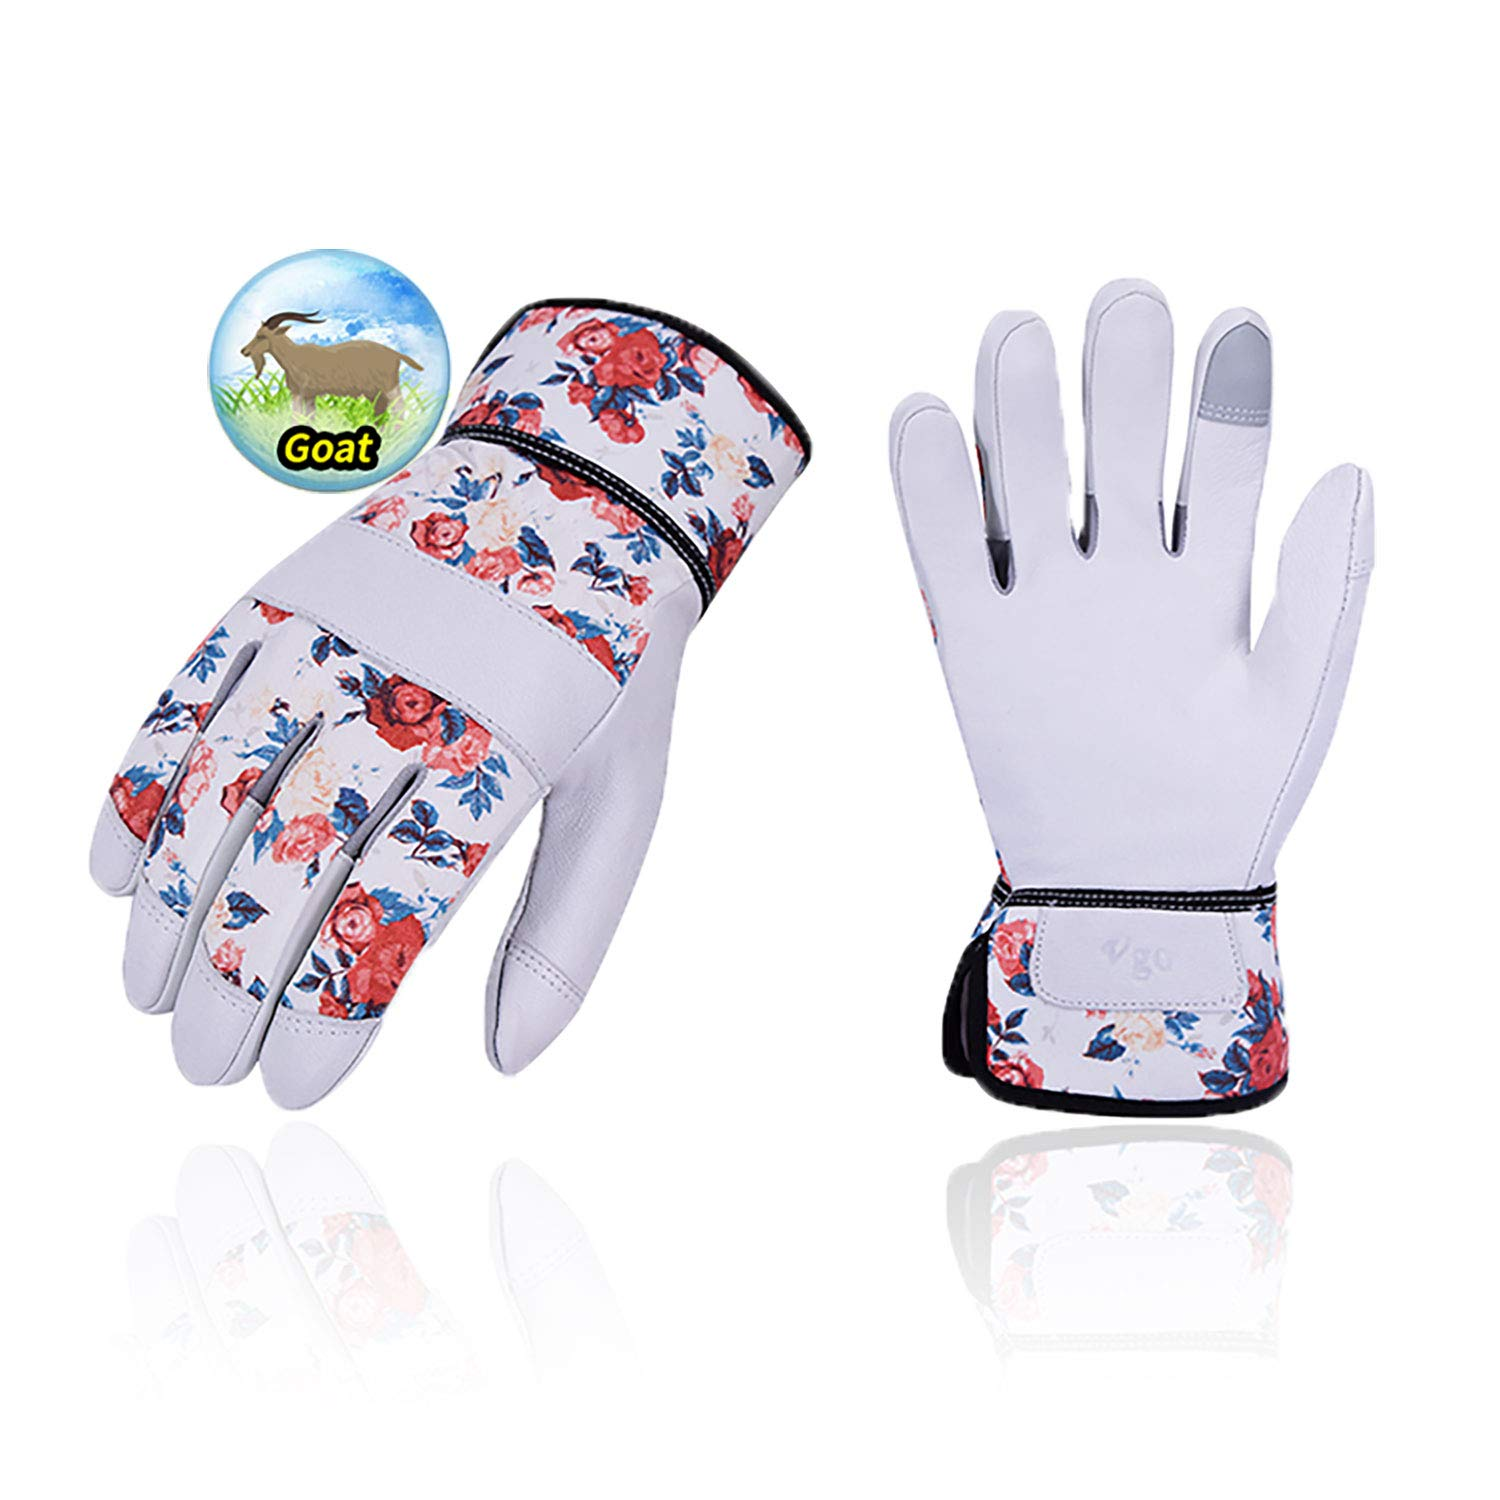 Vgo 1 Pair Premium Goat Leather Gardening Gloves and Pruning Gloves Size S, White, GA3561 Puncture Resistant Touchscreen